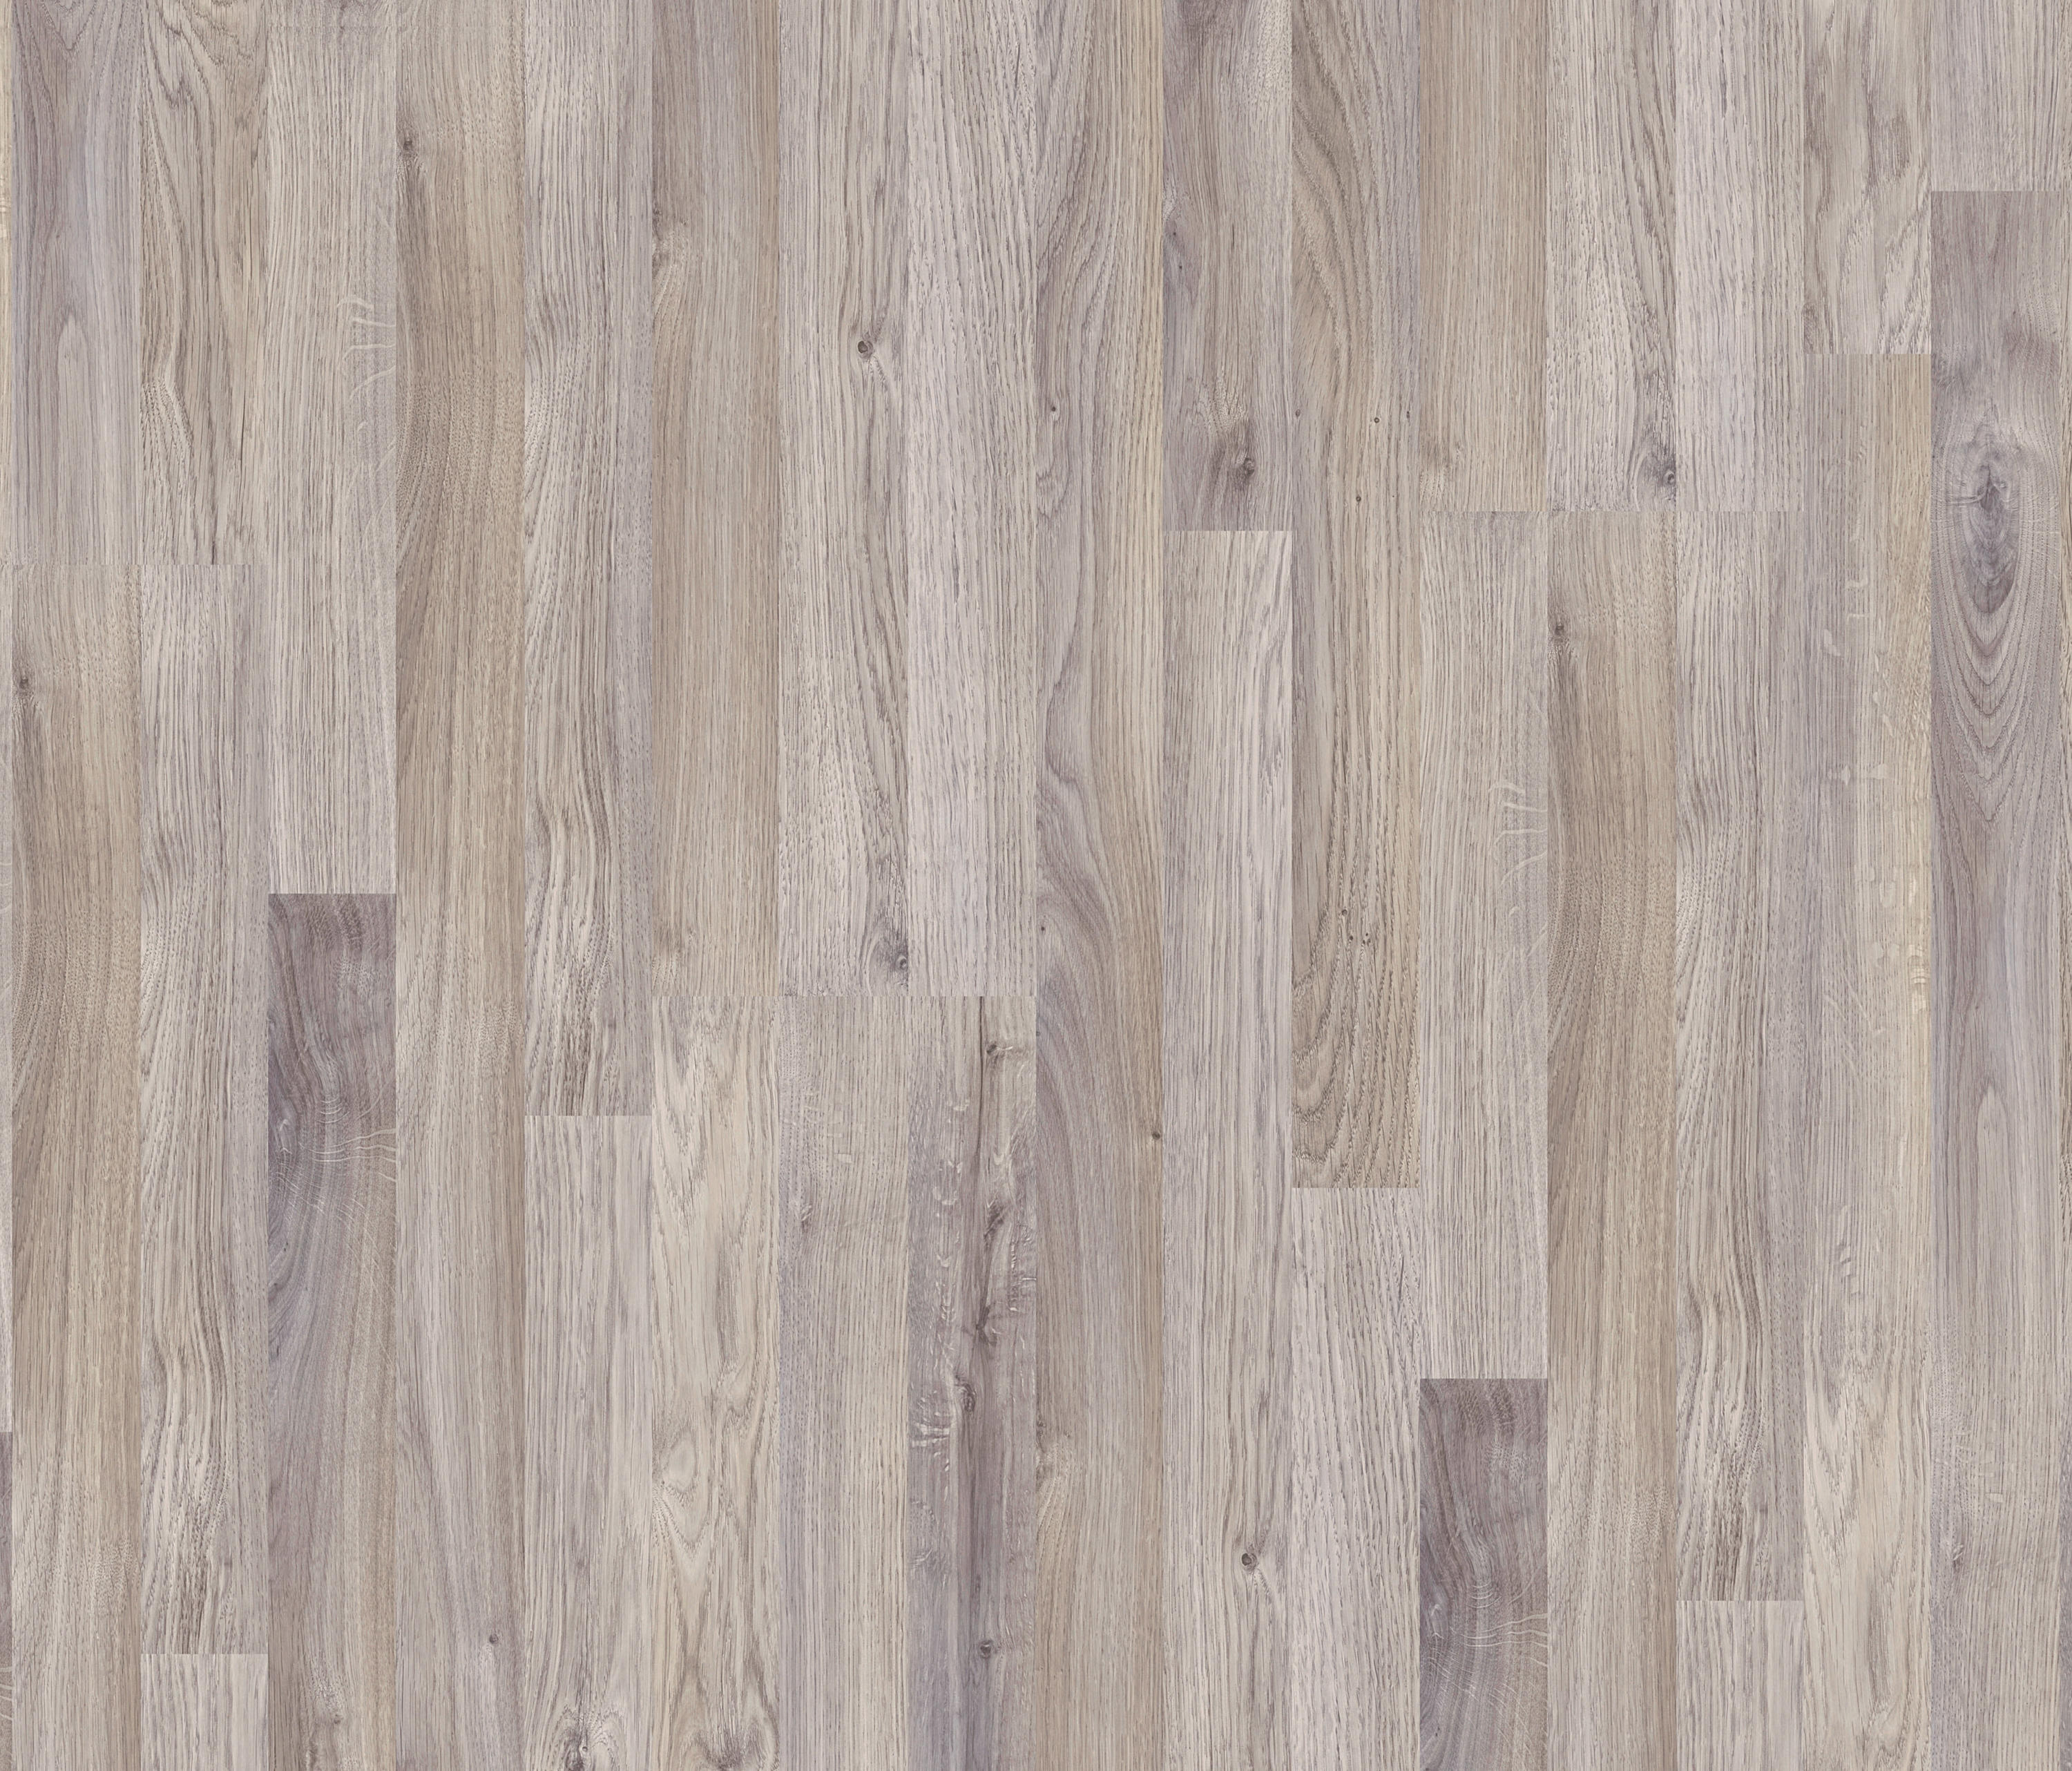 Classic Plank Grey Oak 3 Strip Laminates From Pergo